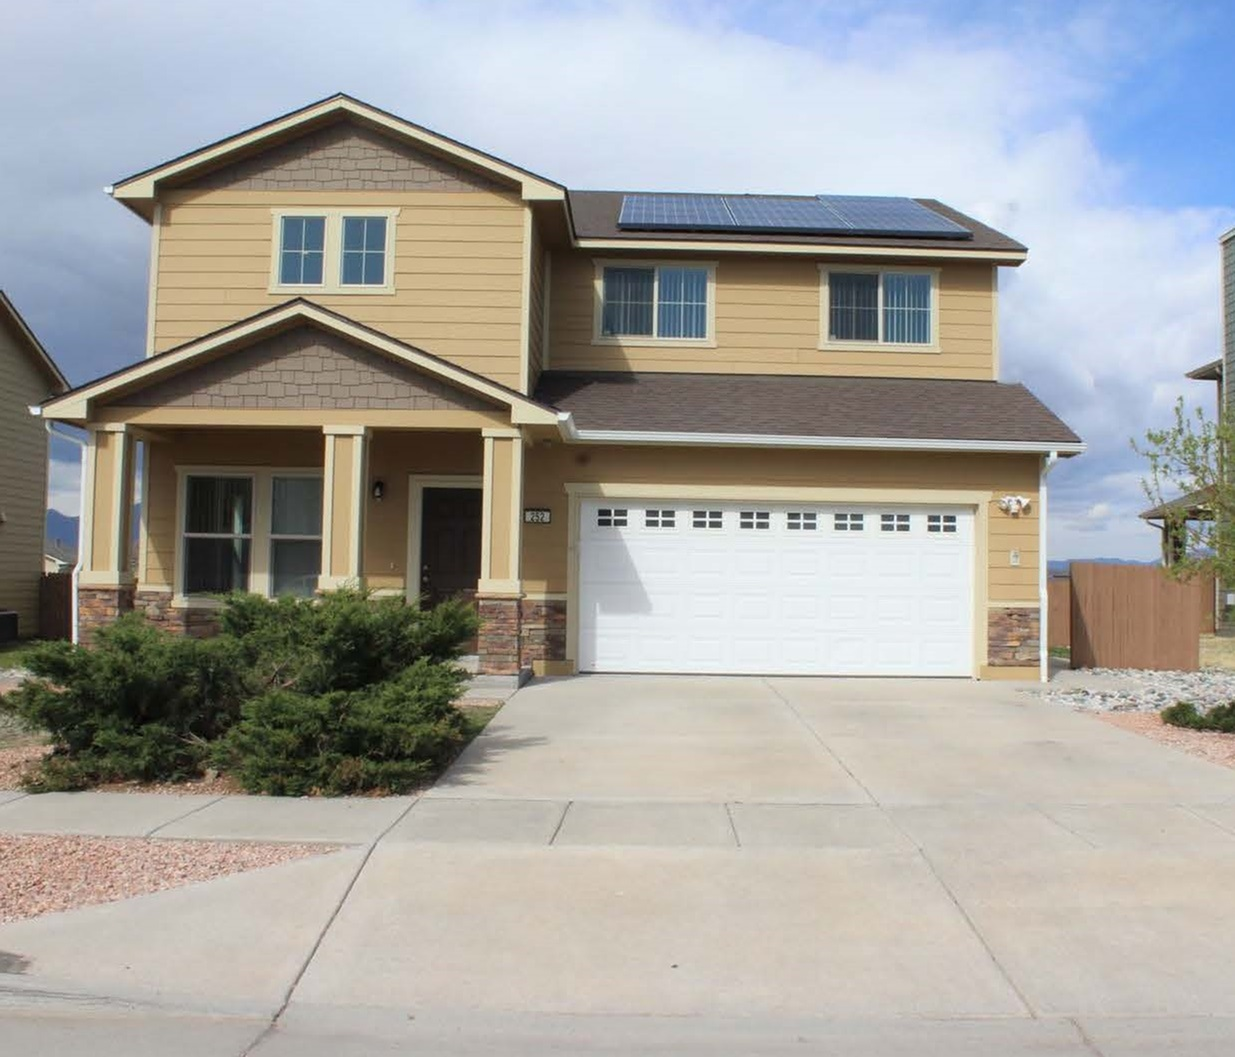 Homes at Tierra Vista Communities Peterson Air Force Base